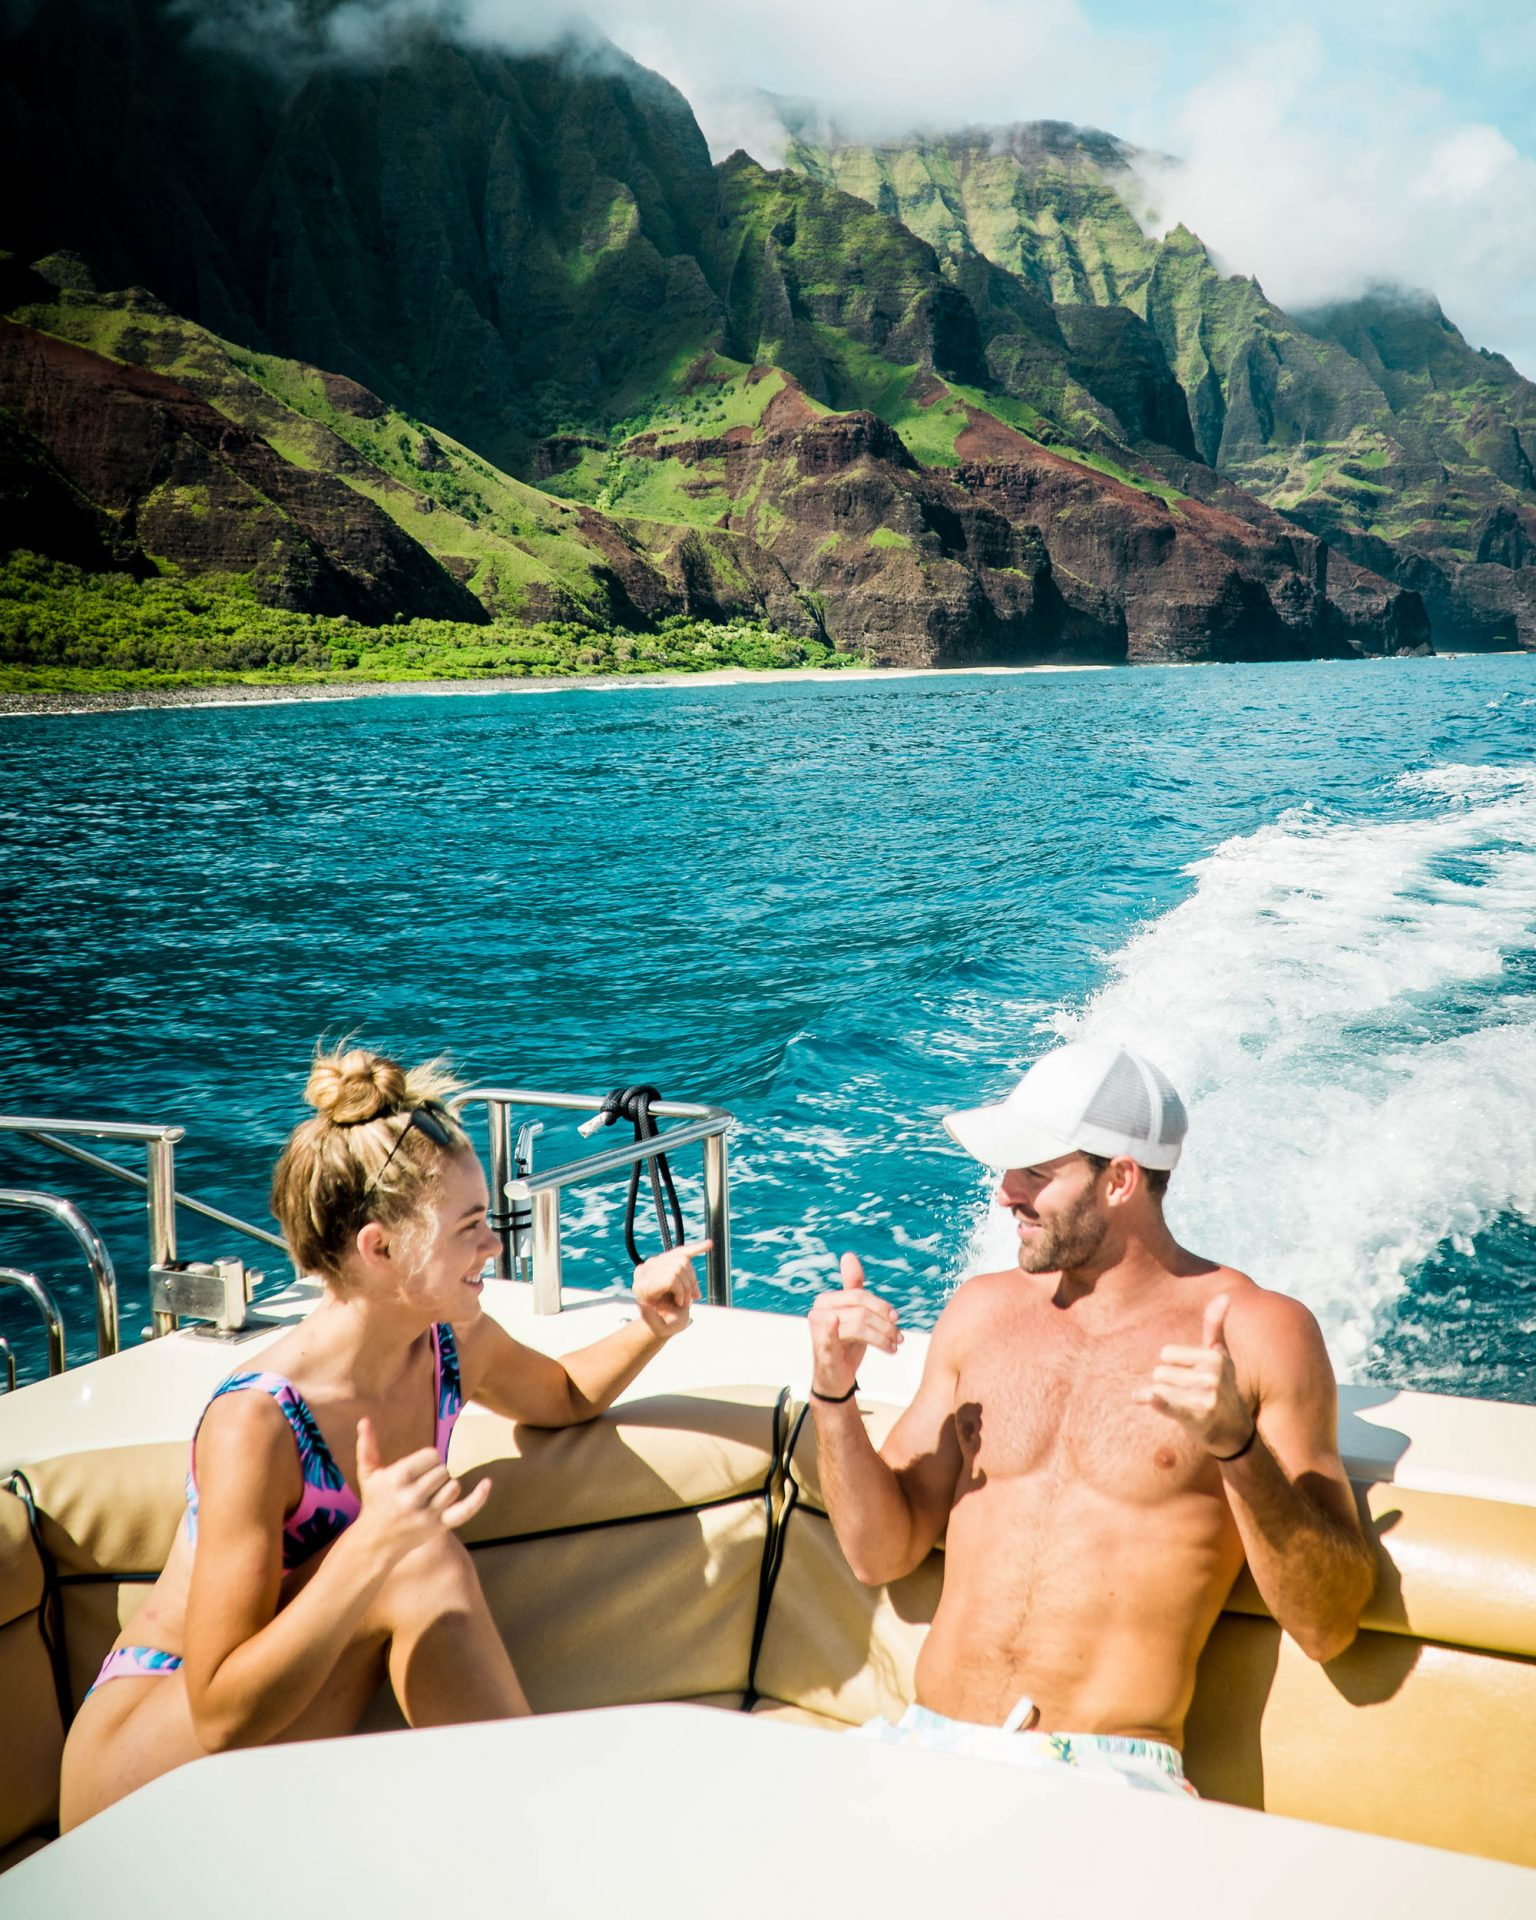 Girl and Guy on a Boat in Tropical Waters with Mountains